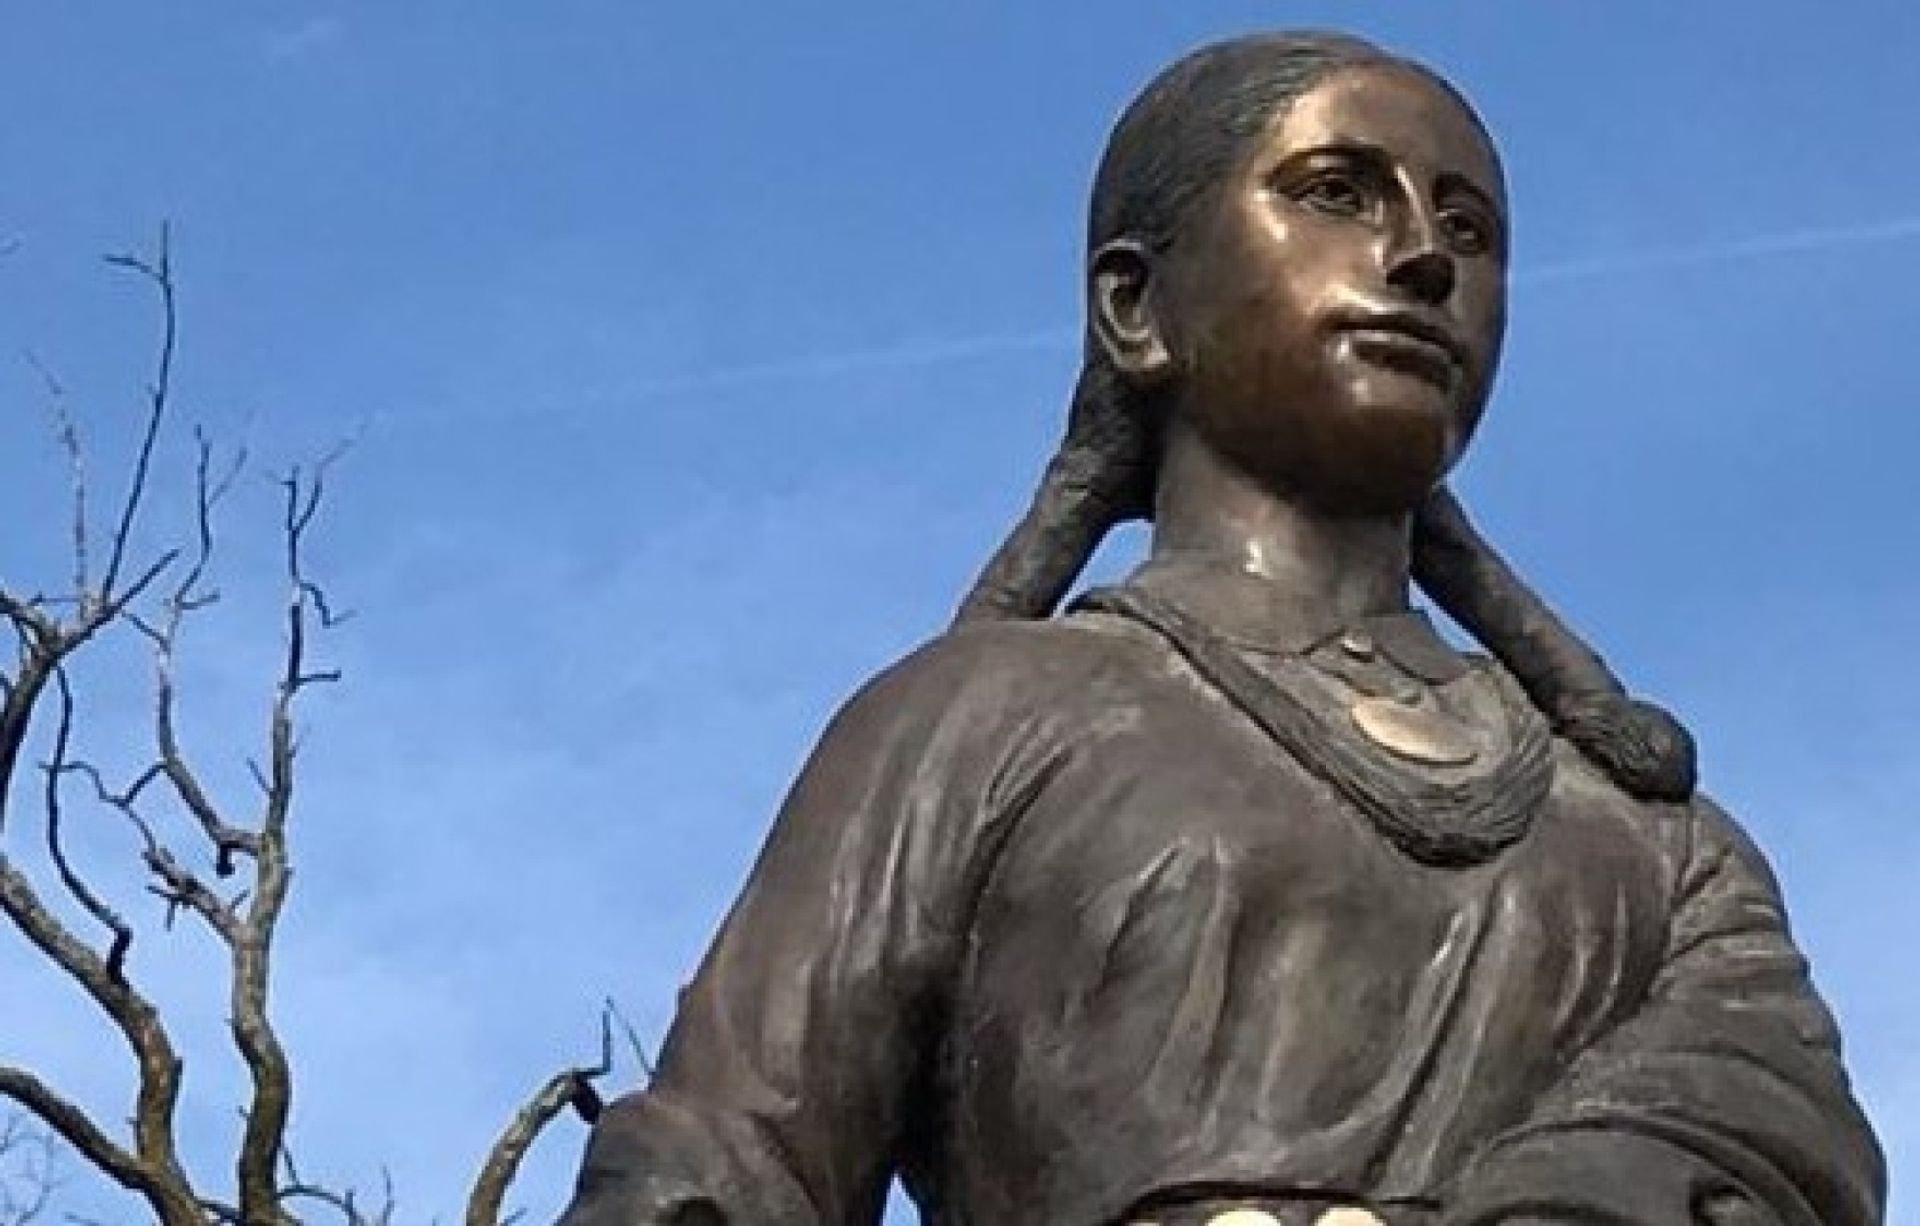 A statue of an Osage woman had been installed last year on a bluff in a Kansas City park Courtesy of the François Chouteau and Native American Heritage Fountain Foundation